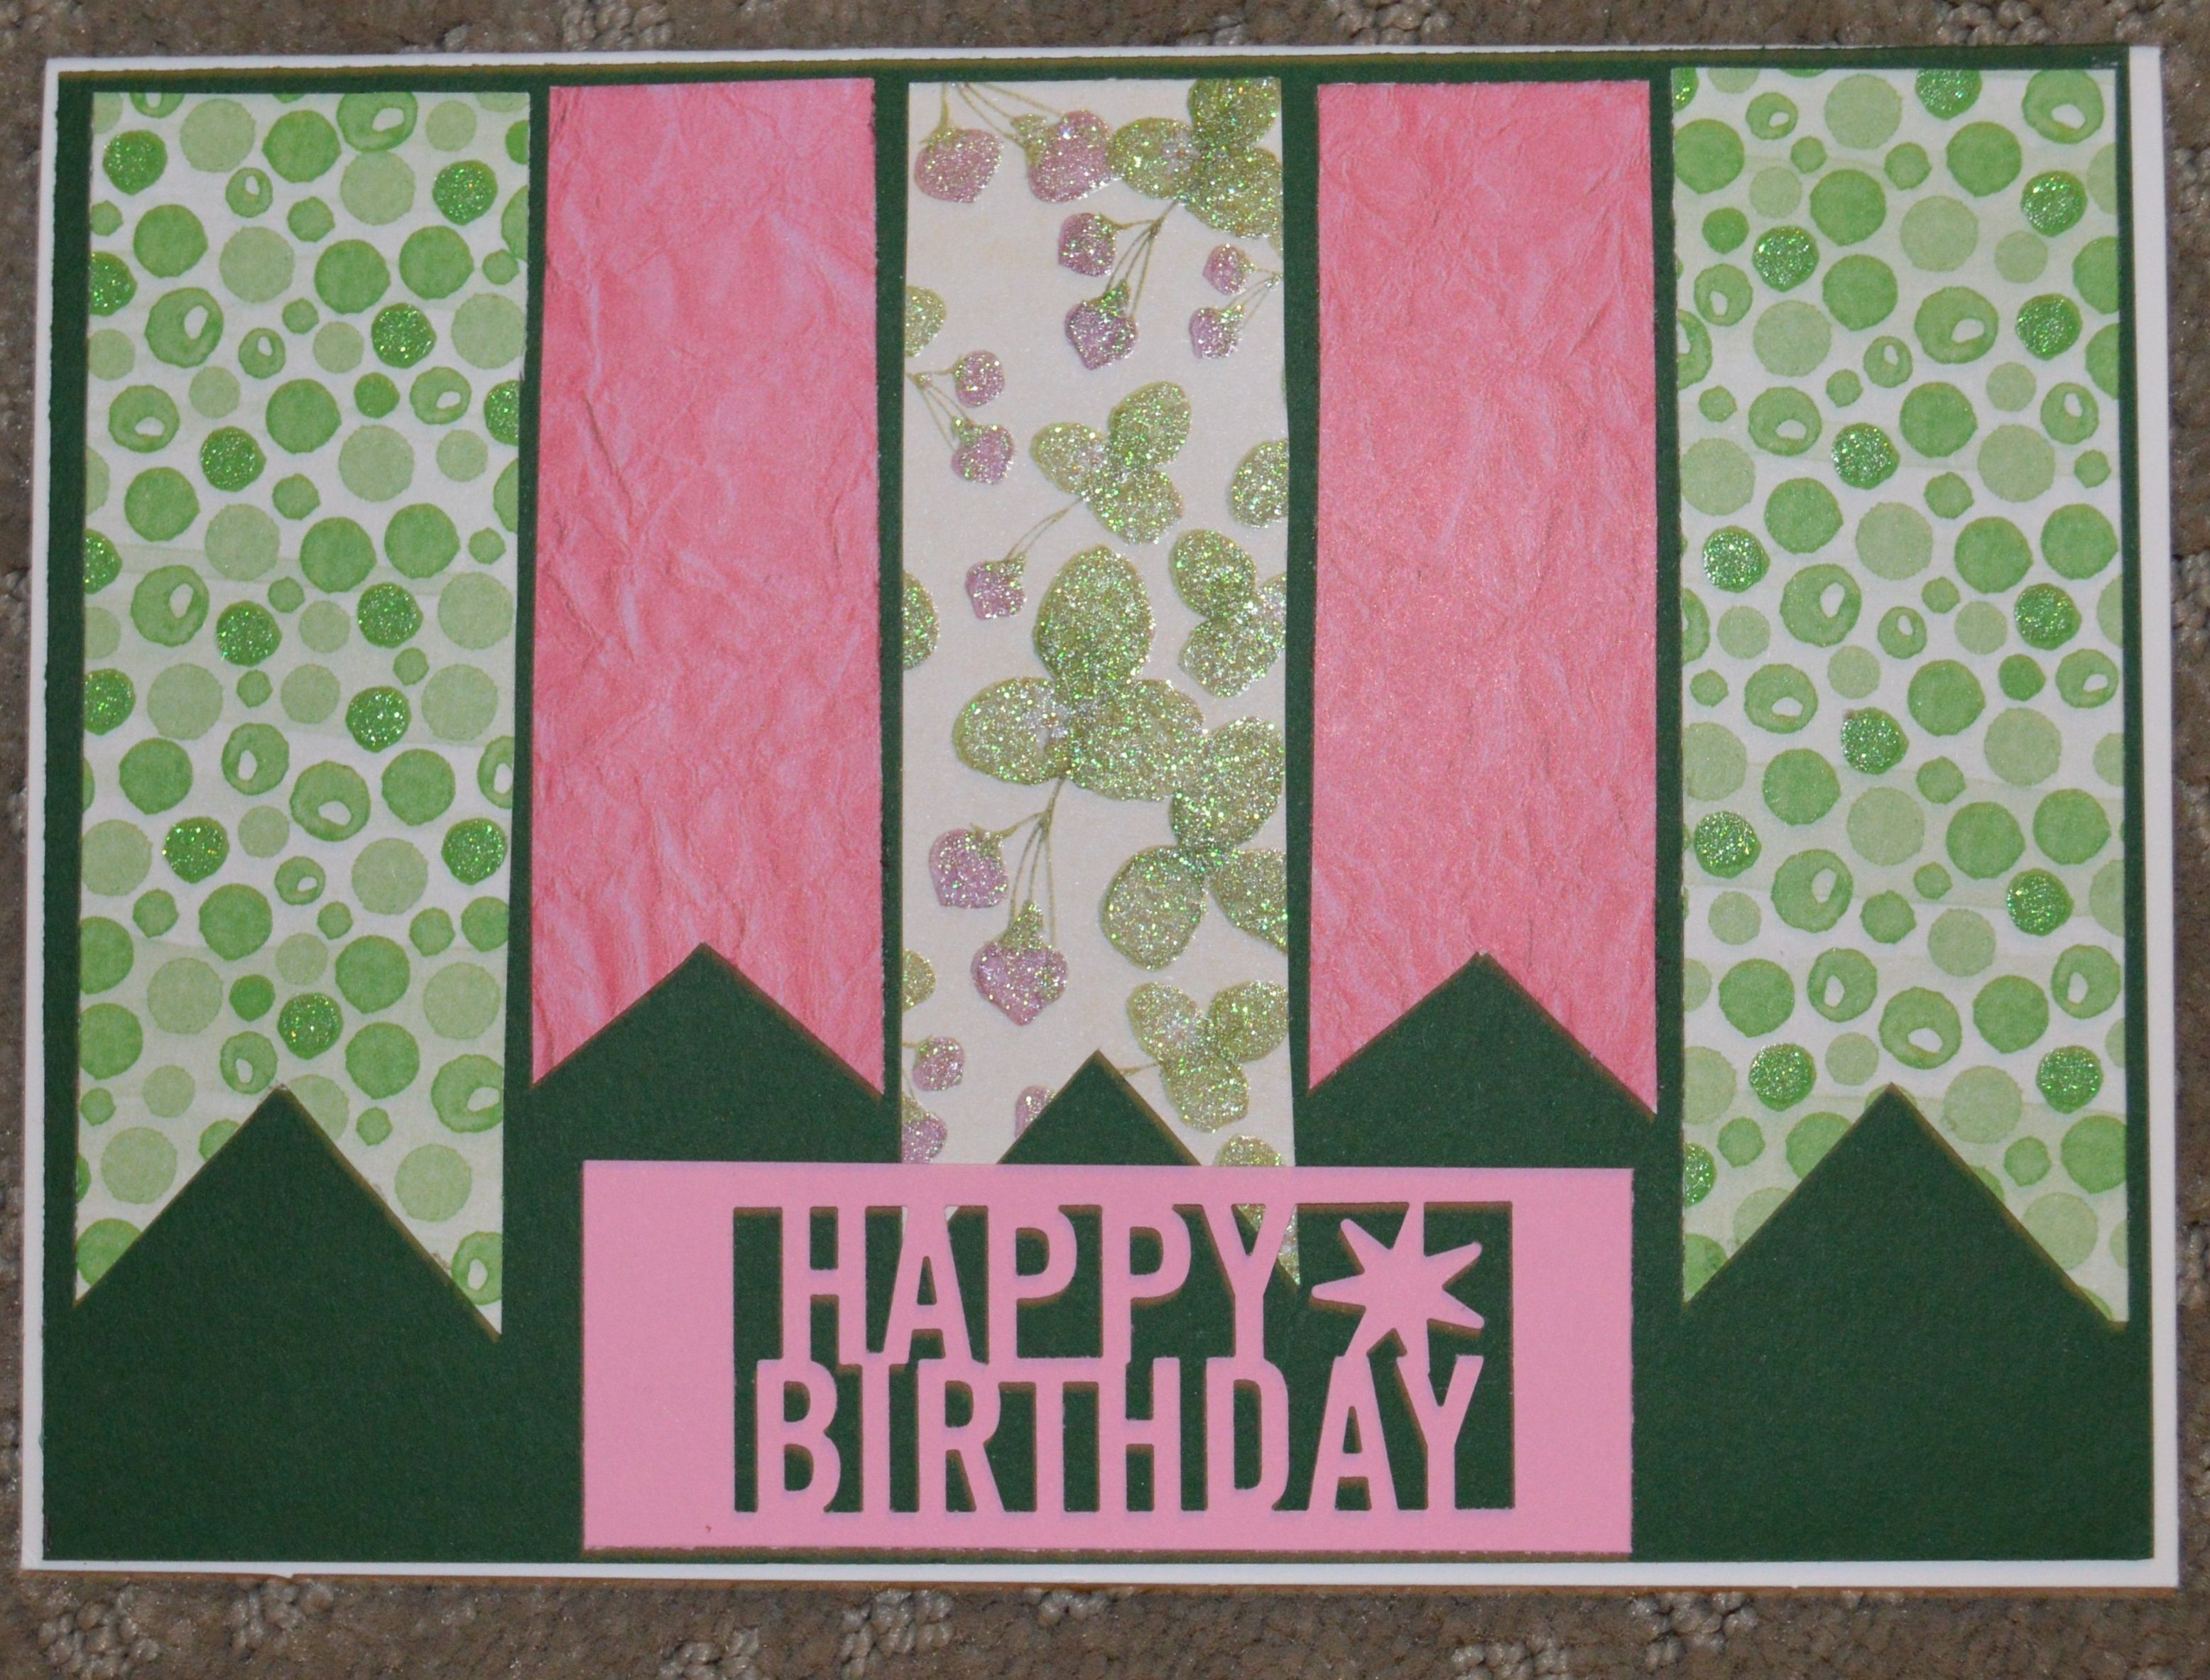 2014 Birthday card